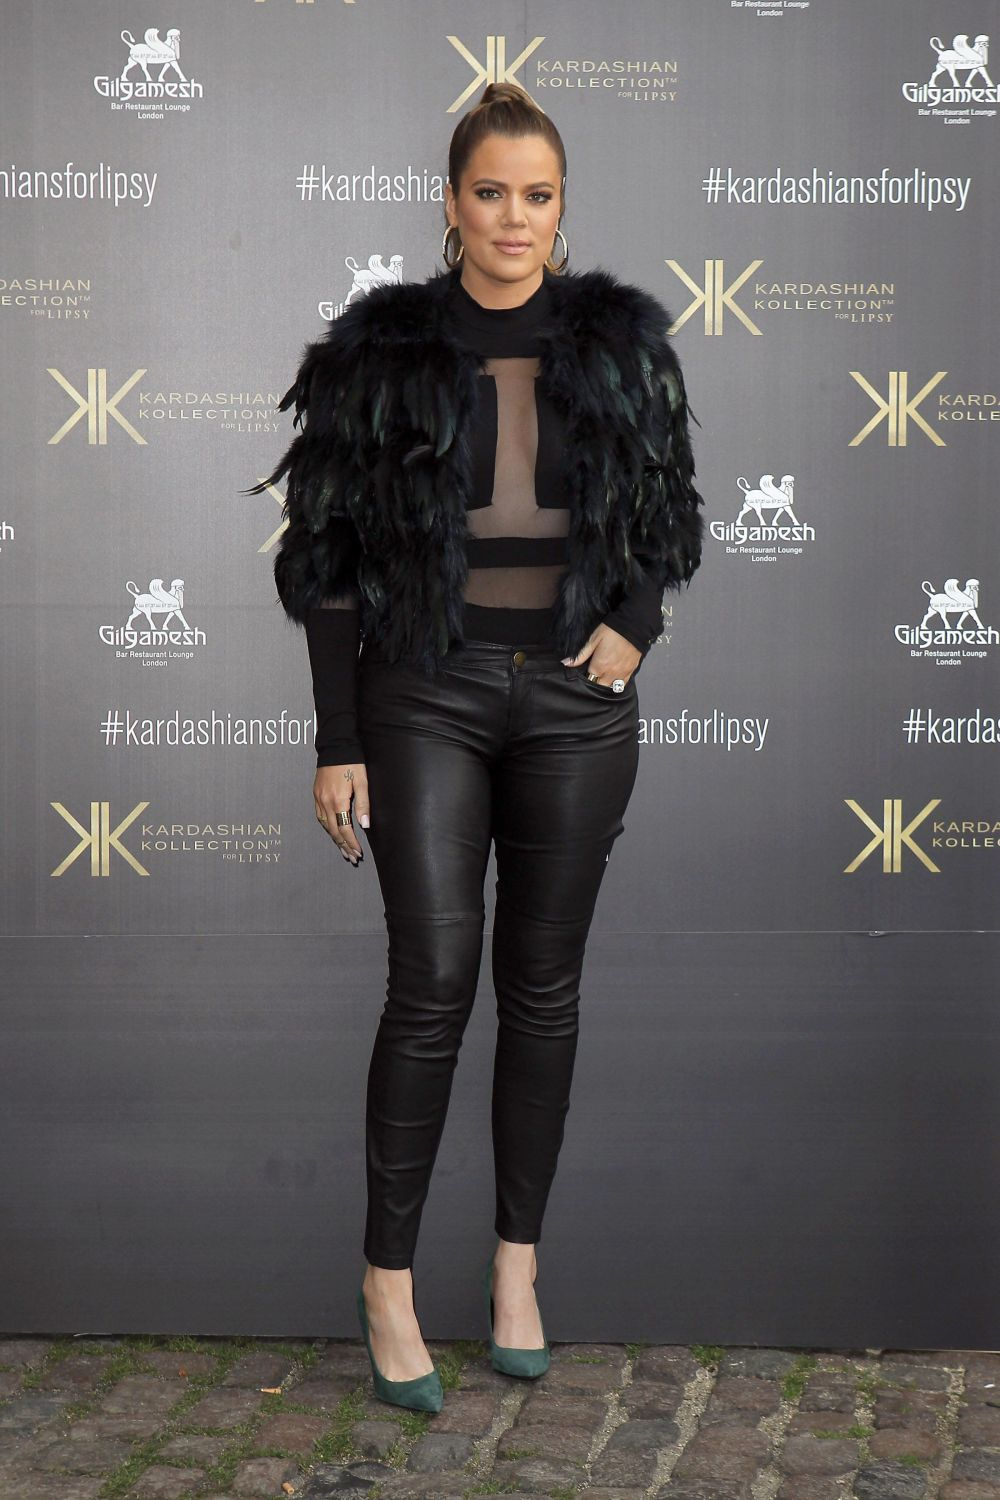 At a customer event to promote the Kardashian Kollection for Lipsy at Gilgamesh in London.